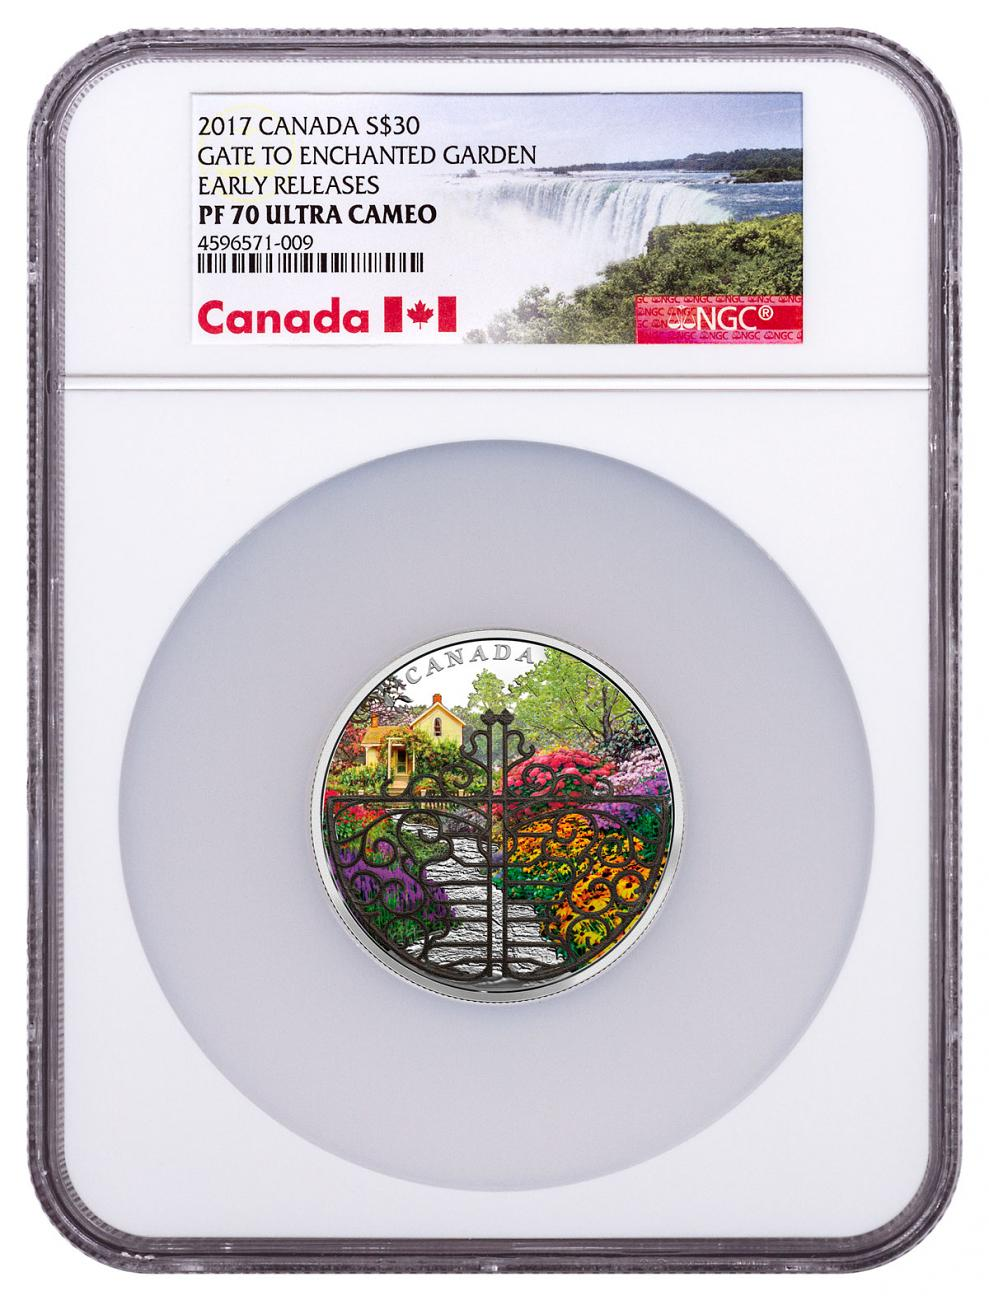 2017 Canada Gate to the Enchanted Garden 2 oz Silver Proof $30 Coin With White Bronze Filigree Gate NGC PF70 UC ER Exclusive Canada Label